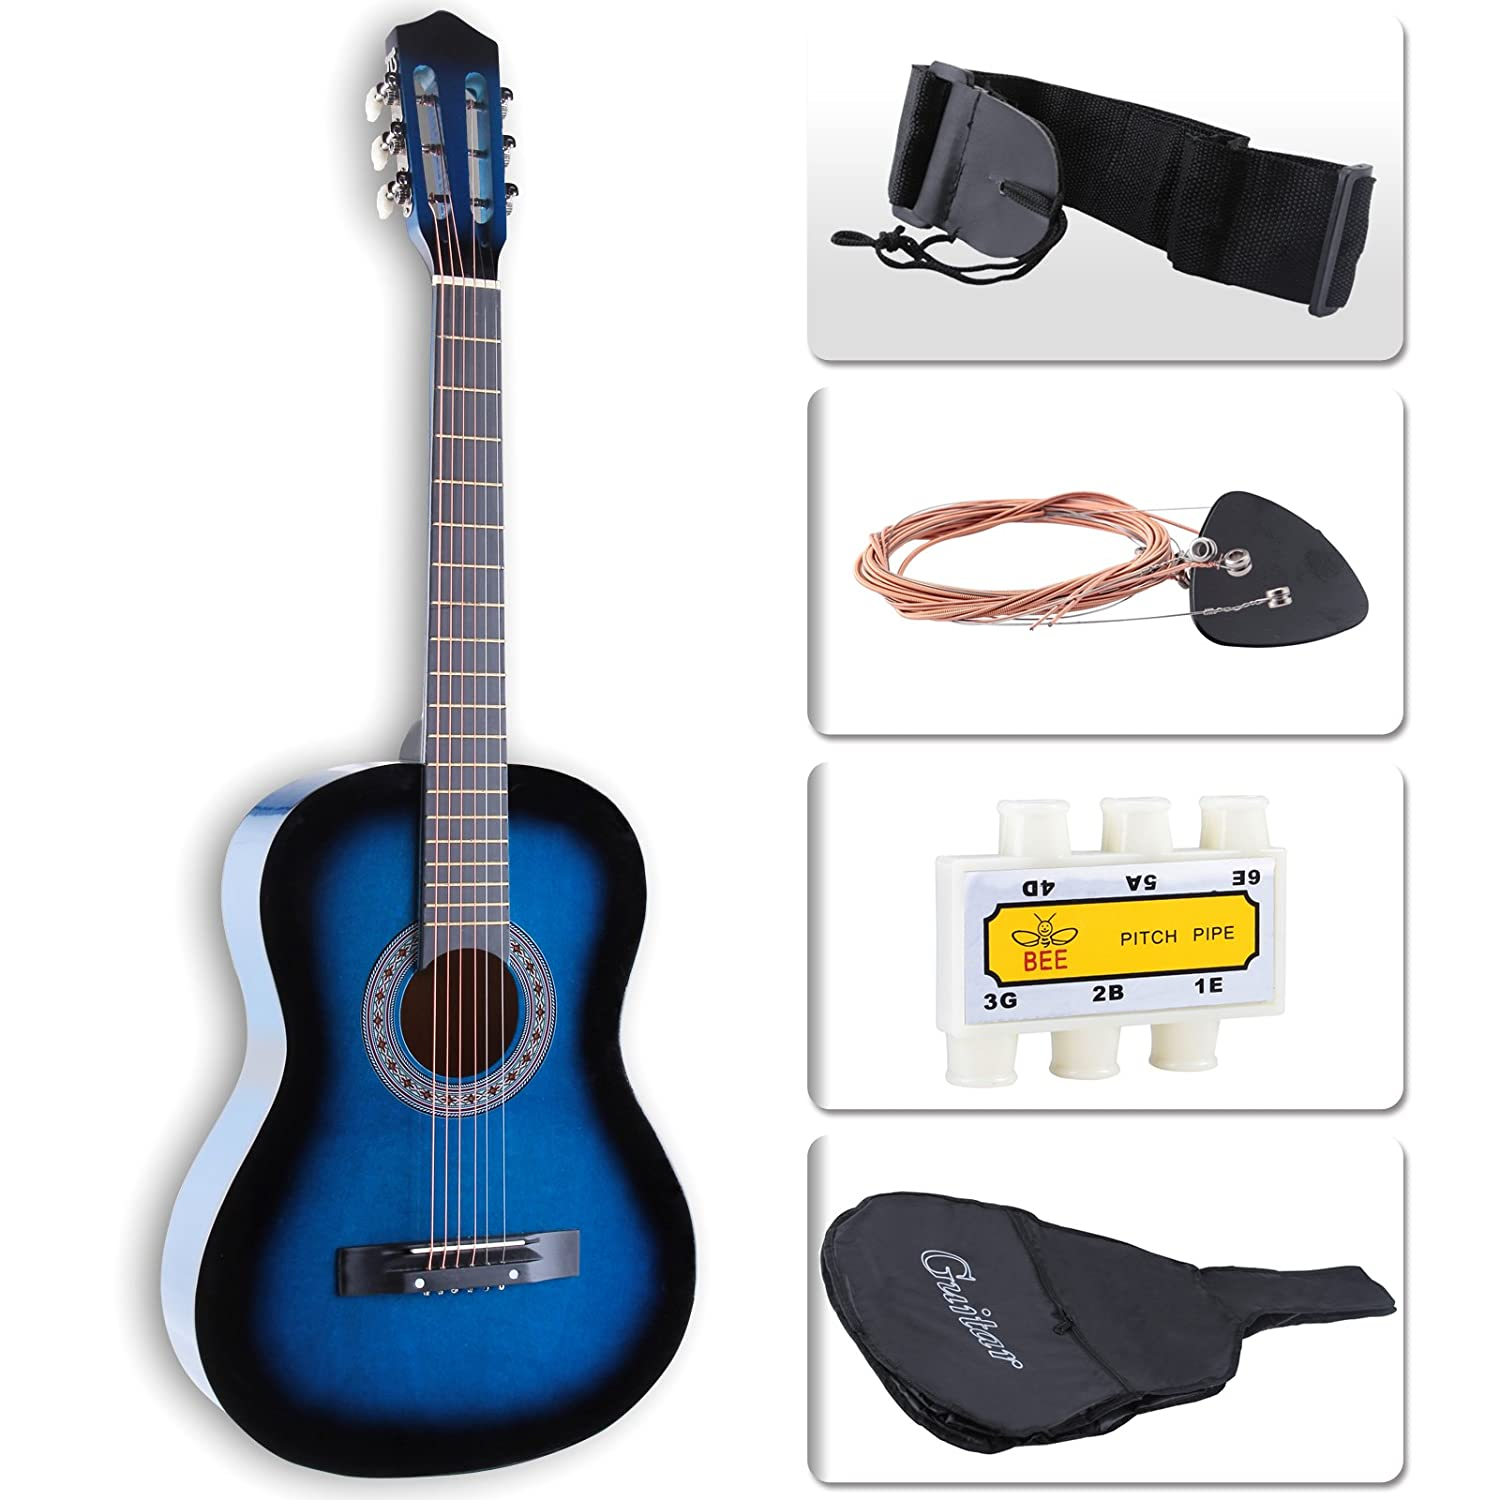 LAGRIMA Beginners Acoustic Guitar w/Guitar Case, Strap, Tuner & Pick Steel Strings (Brown)